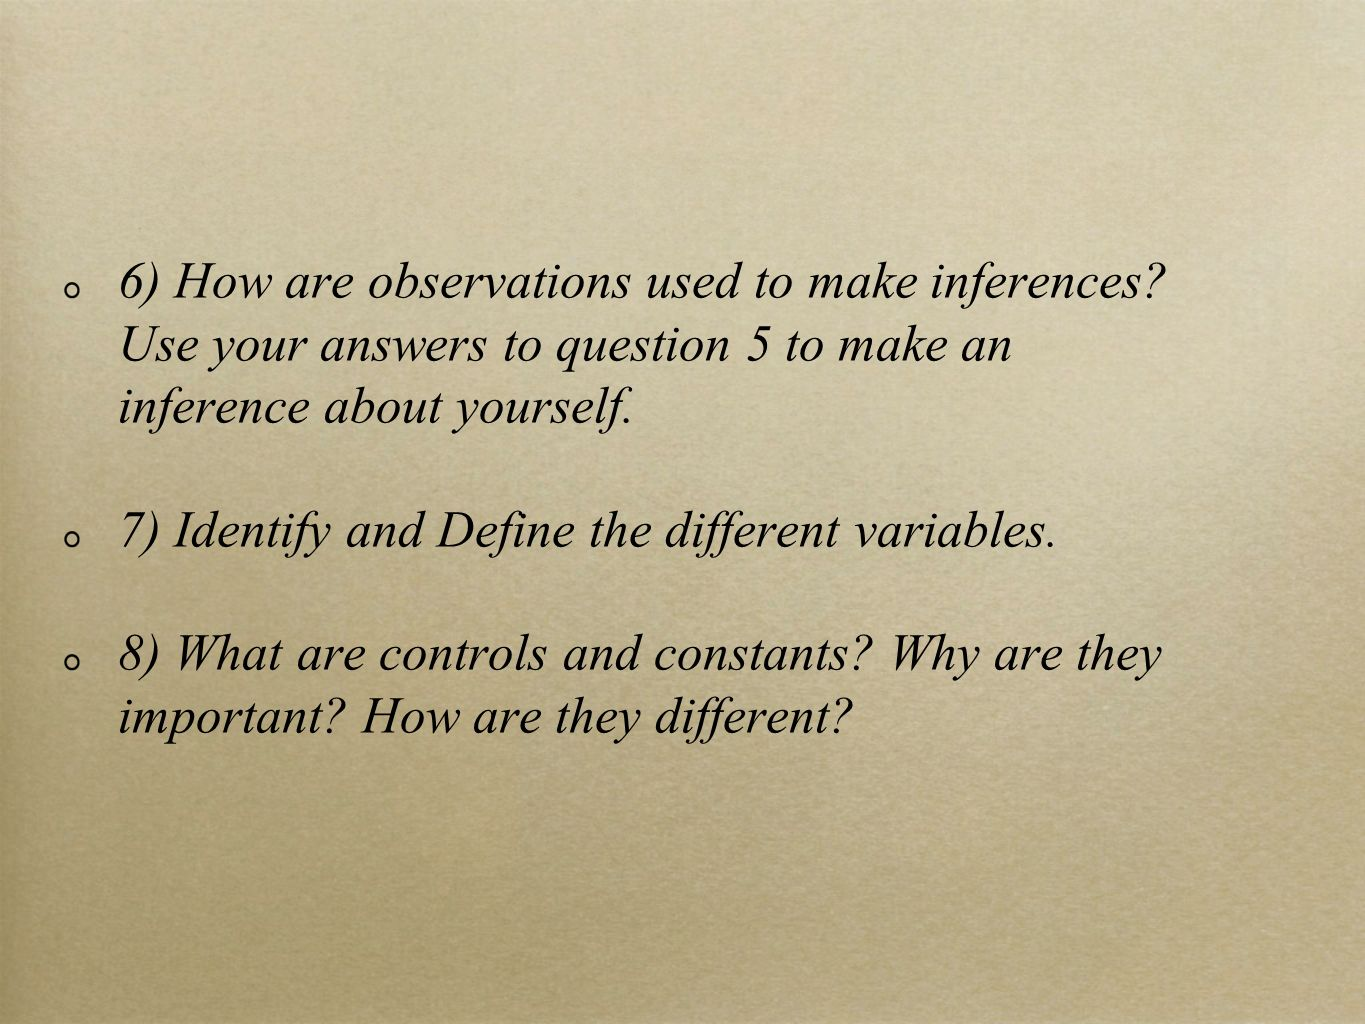 6) How are observations used to make inferences